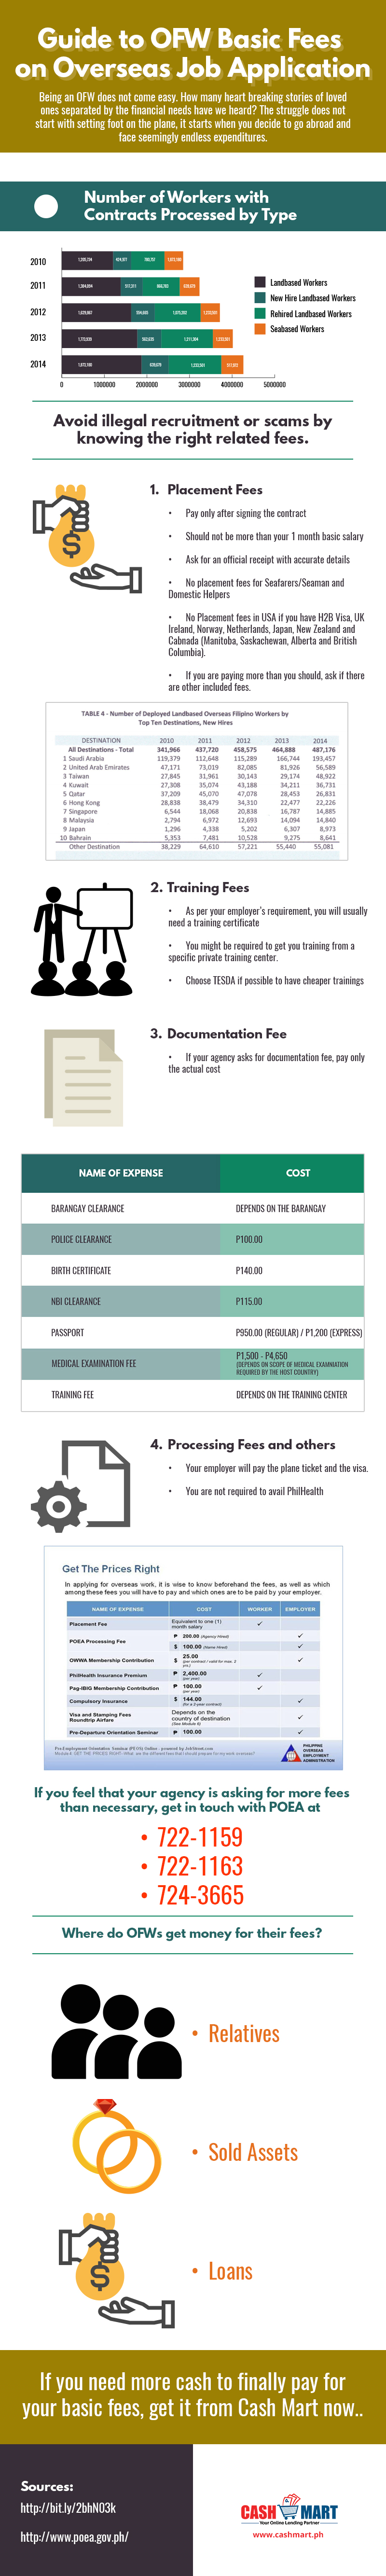 guide-to-ofw-basic-fees-on-overseas-job-application